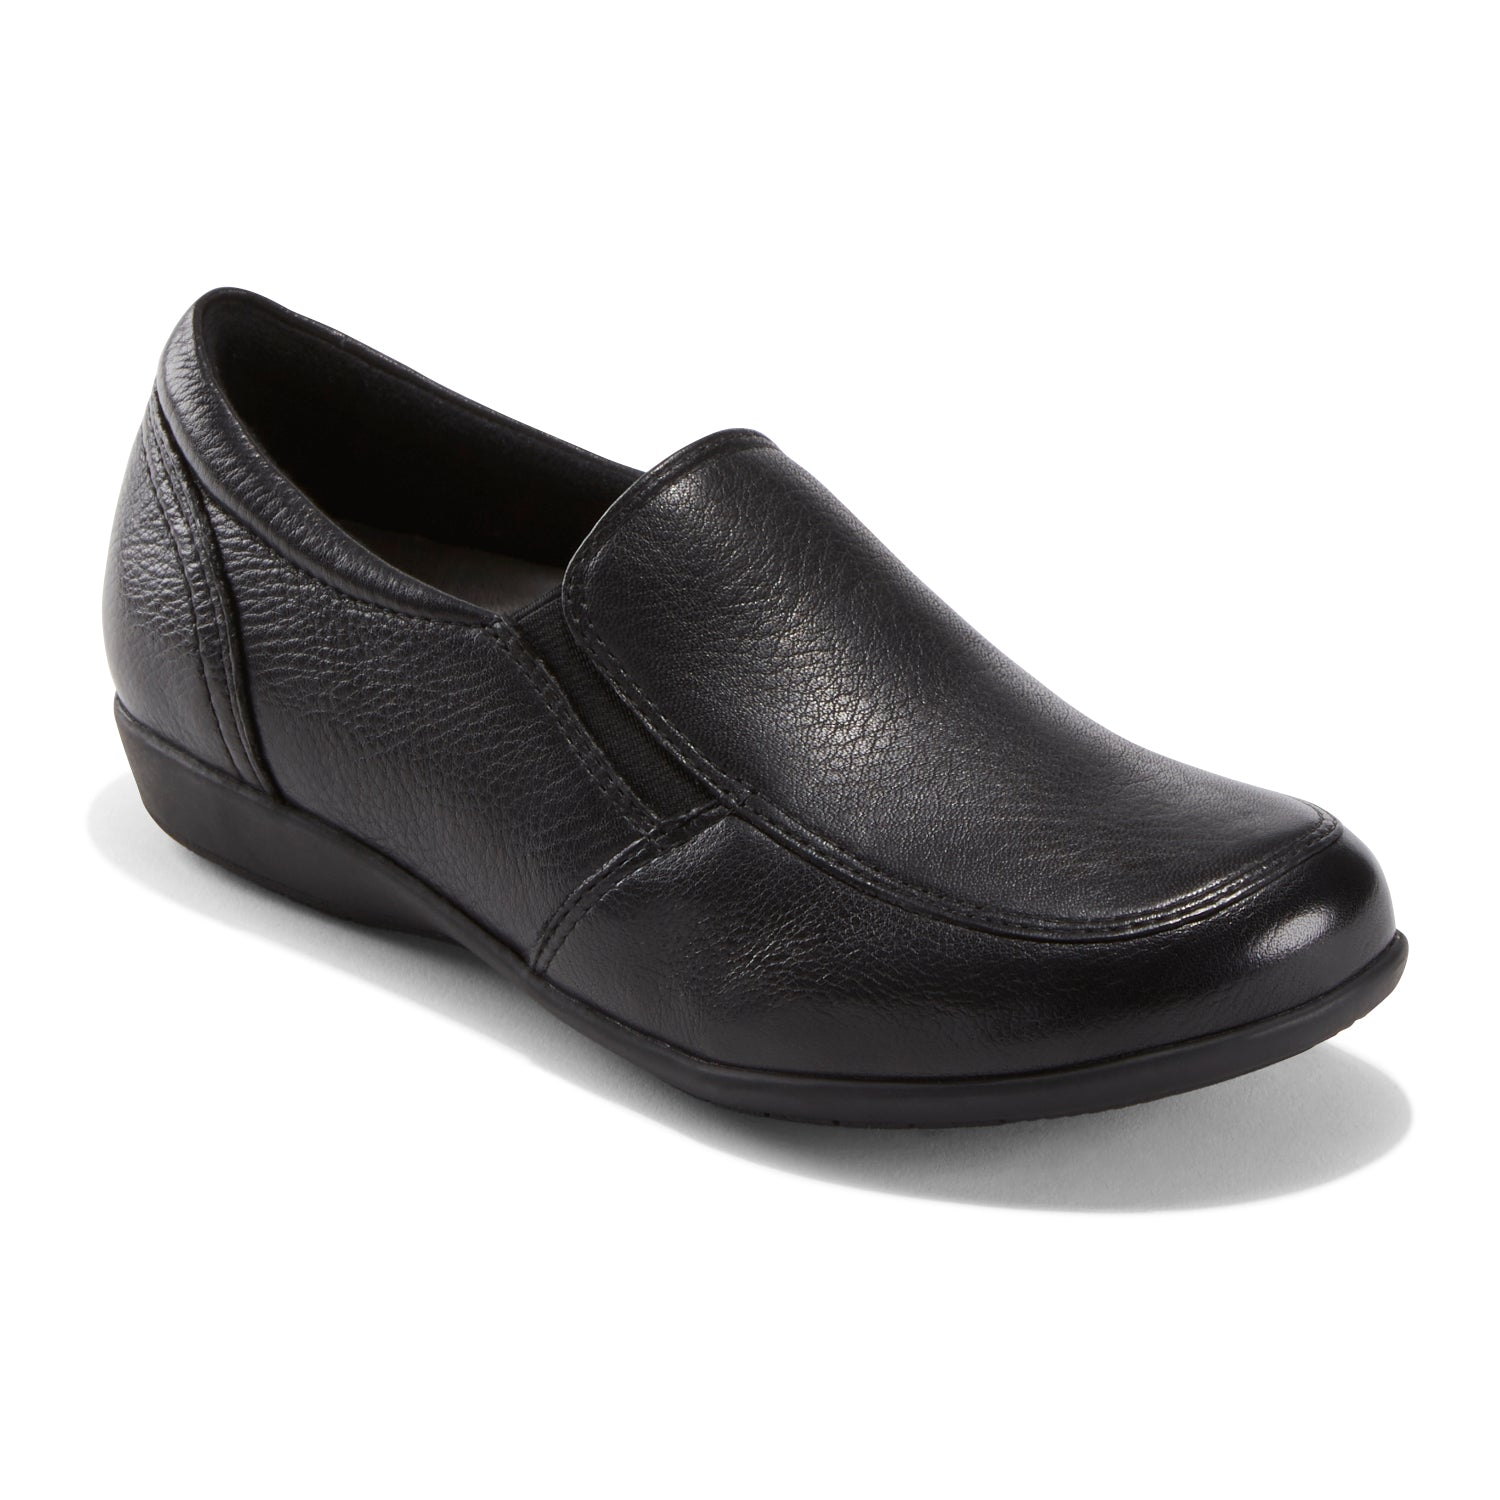 Understated, refined and eco conscious, it s an exceptionally comfortable shoe that slips on effortlessly and provides limitless versatility. It\\\'s the perfect style for the office or around town.